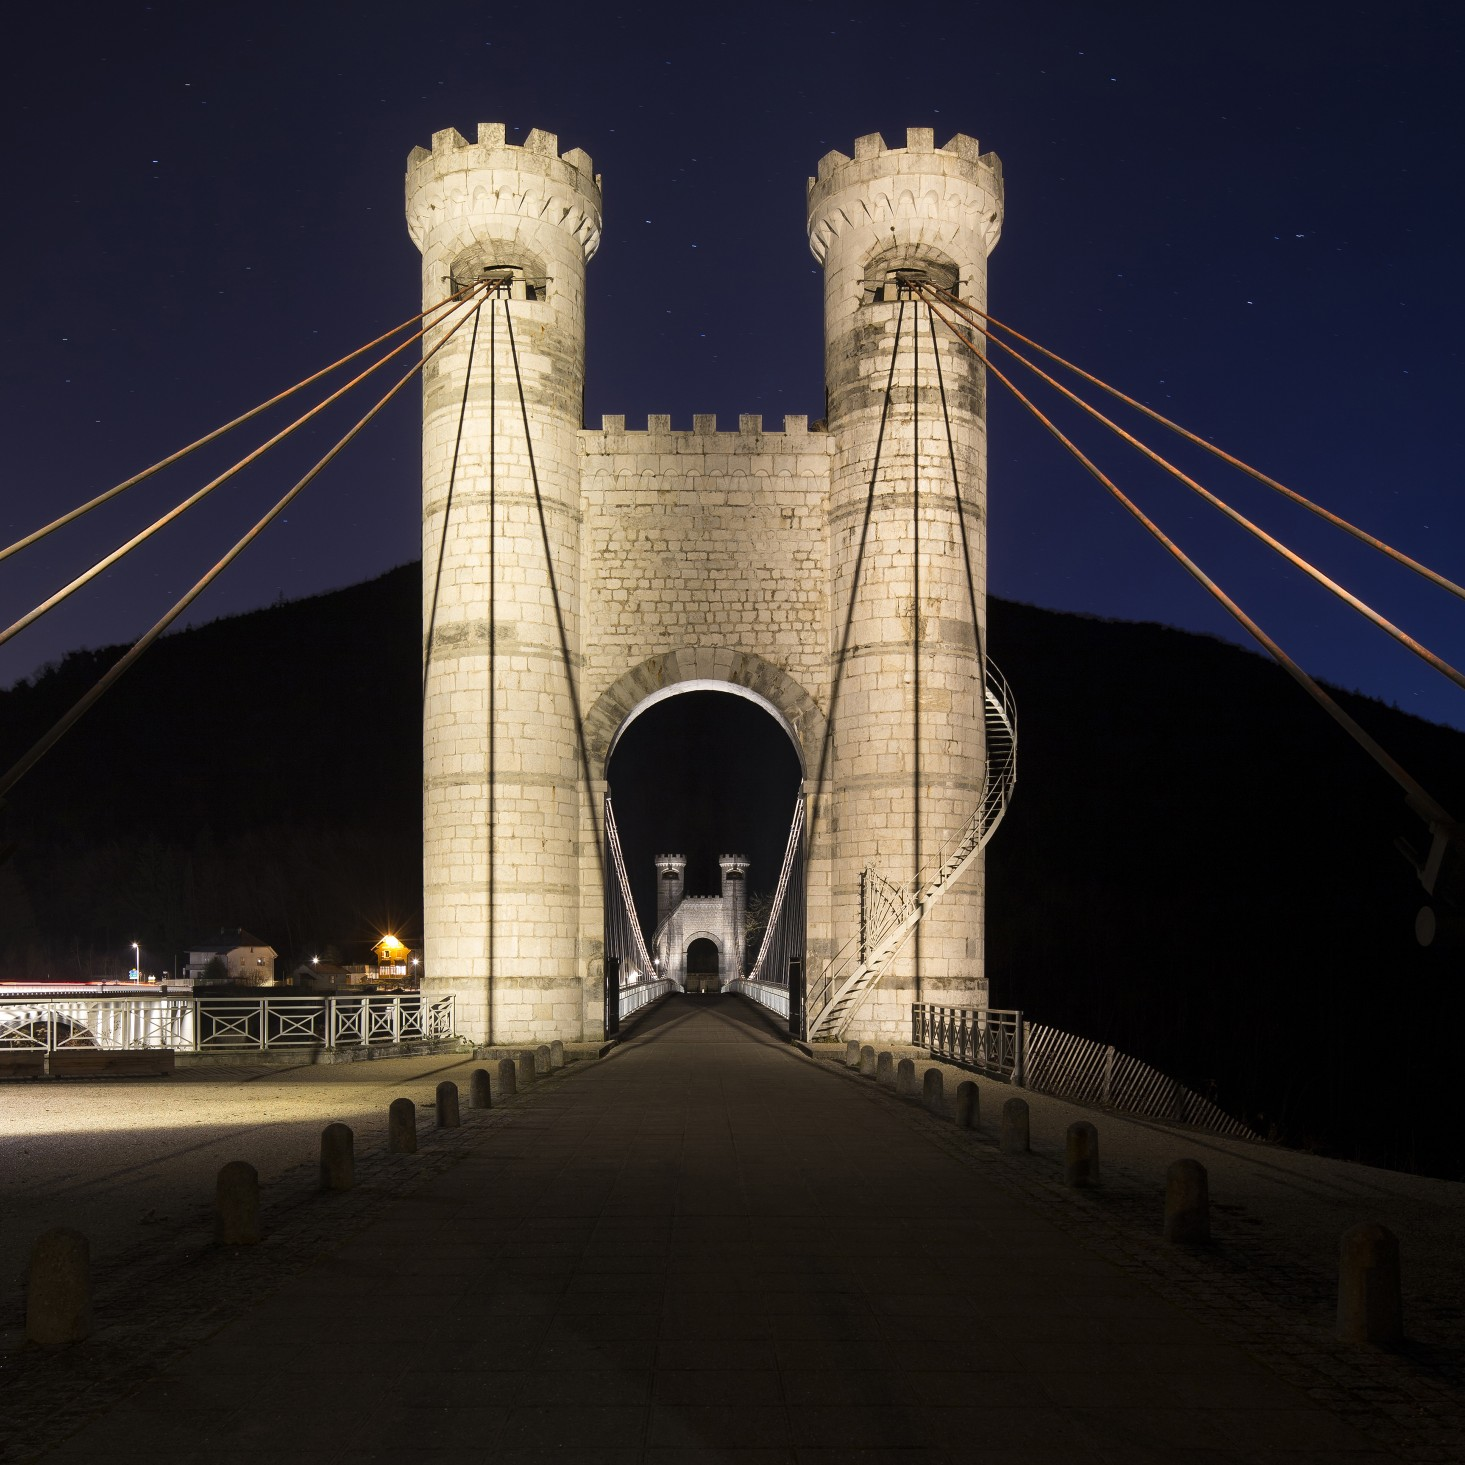 Les Éclairagistes Associés selected Lumenfacade luminiares in a warm 3000K. The luminaires are installed underneath the bridge and aimed downward to emphasize the structure's unreinforced concrete and its arch.